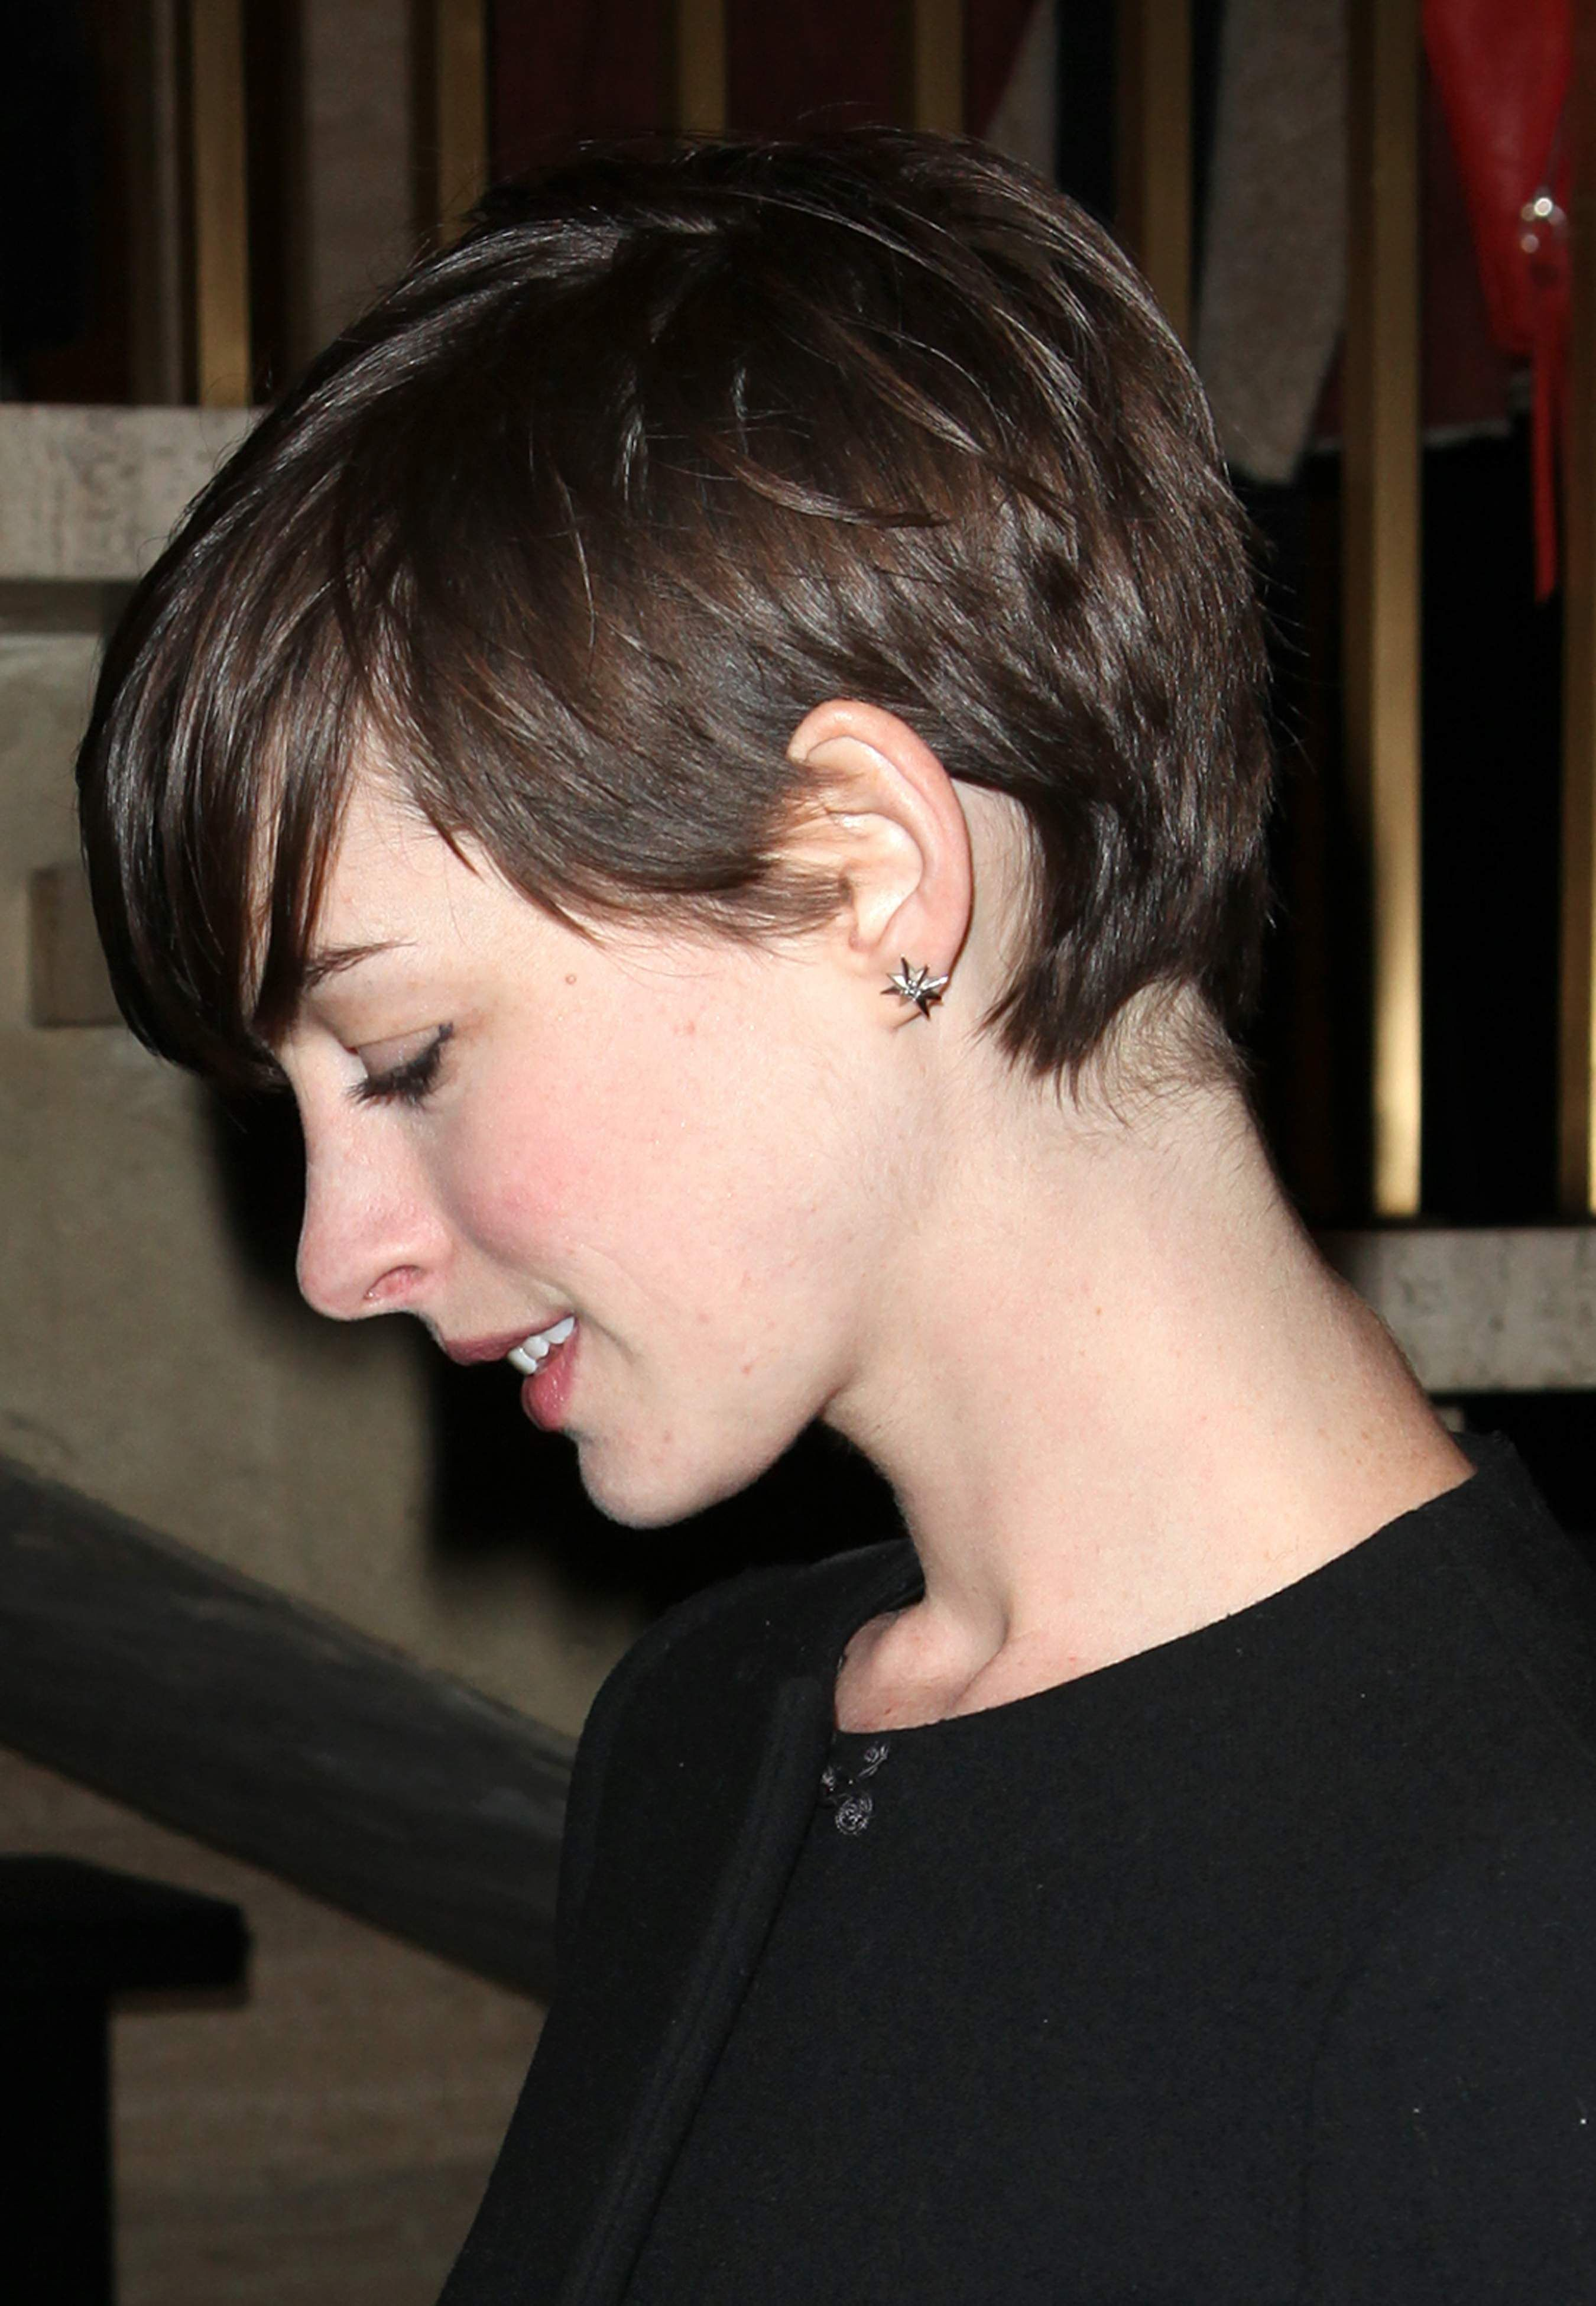 17 Great Short Pixie Hairstyles